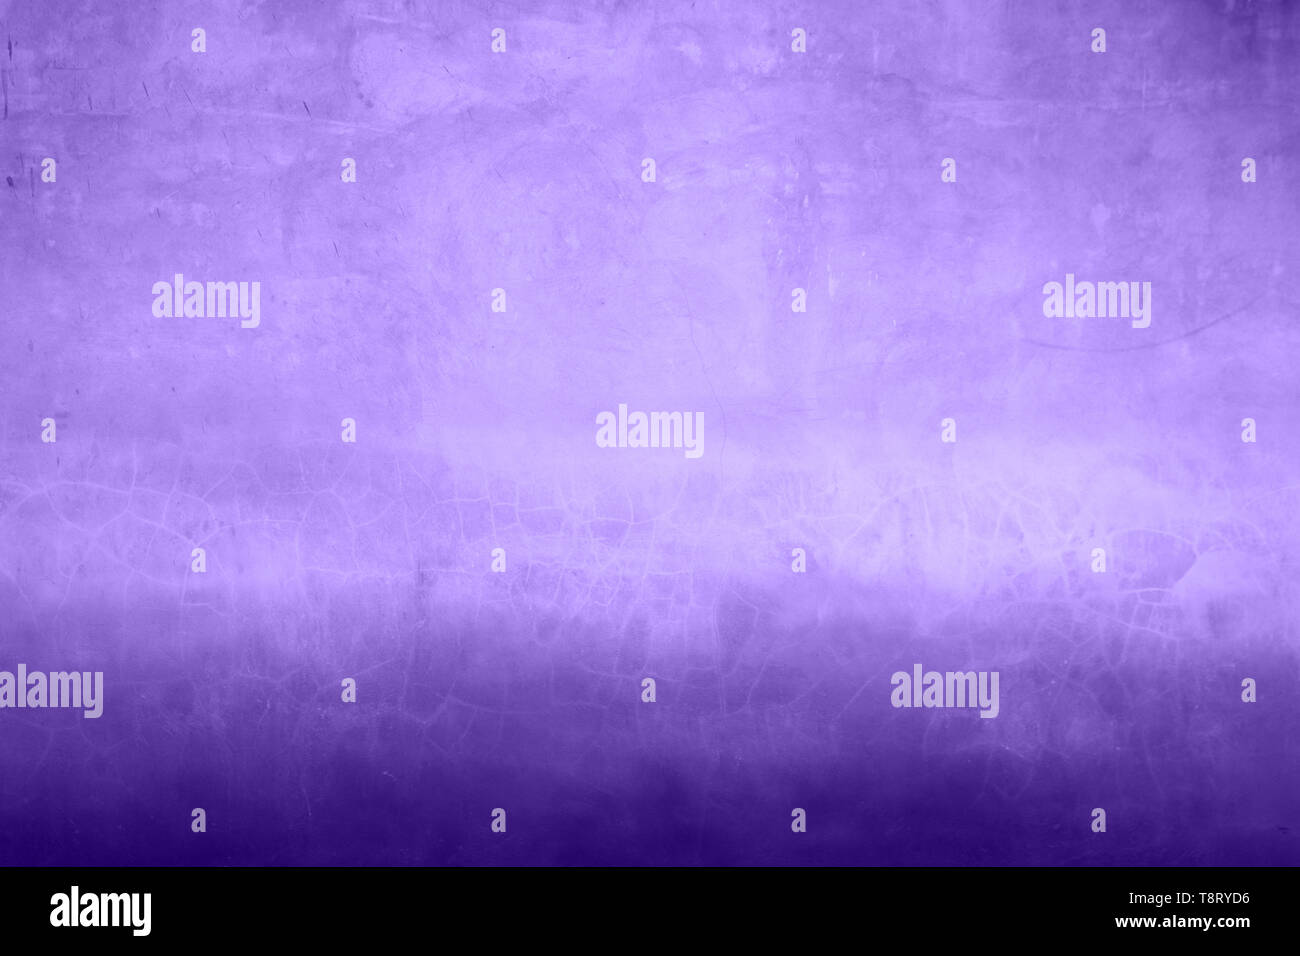 Old wall surface in two tone ultra violet color. Ideal backdrop for design. - Stock Image